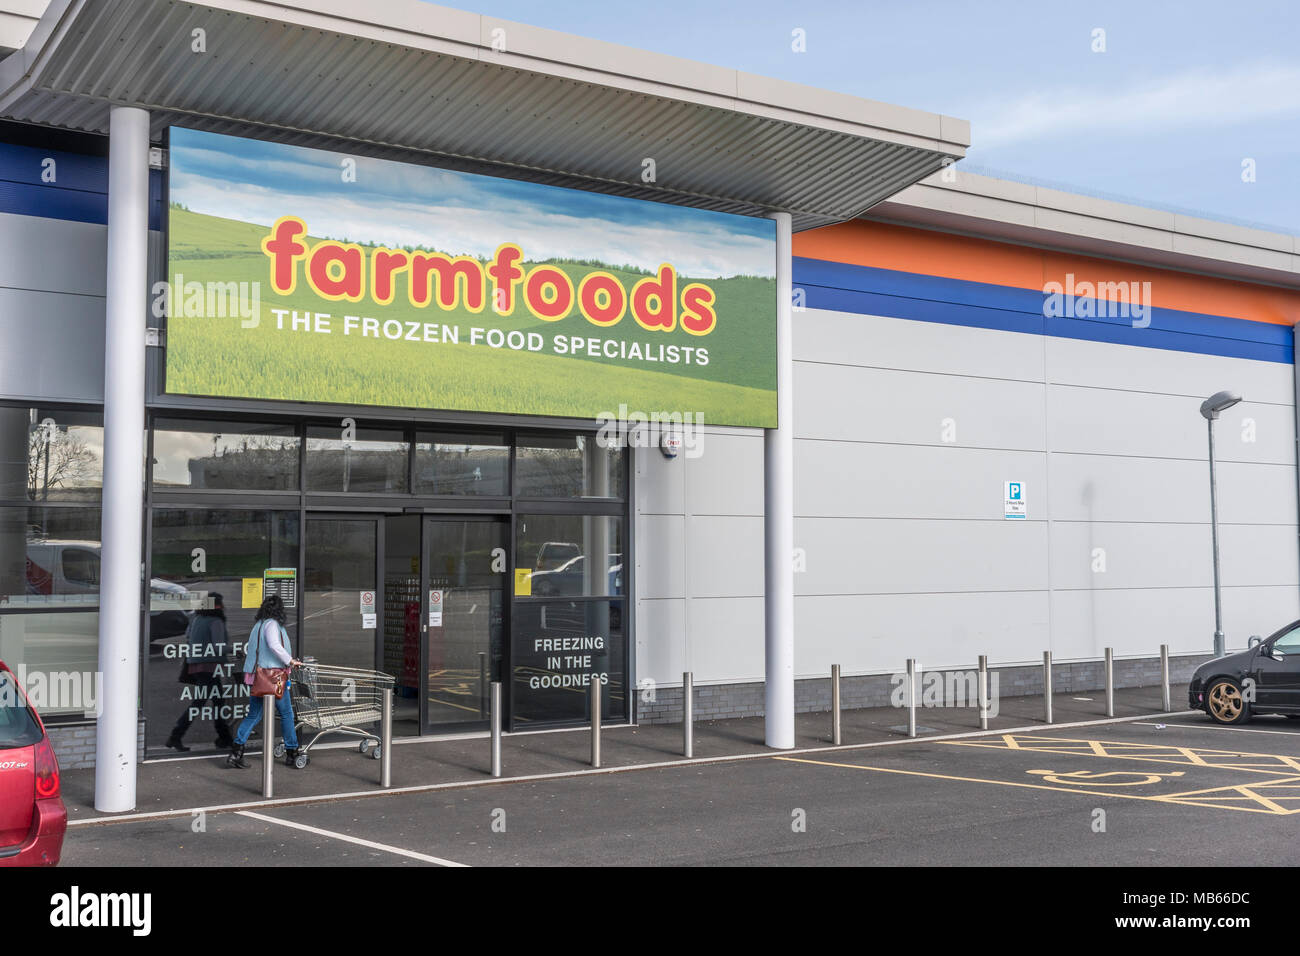 Shop / store exterior of the successful UK retailer Farmfoods at Bodmin, Cornwall. Specialises in frozen foods. Stock Photo